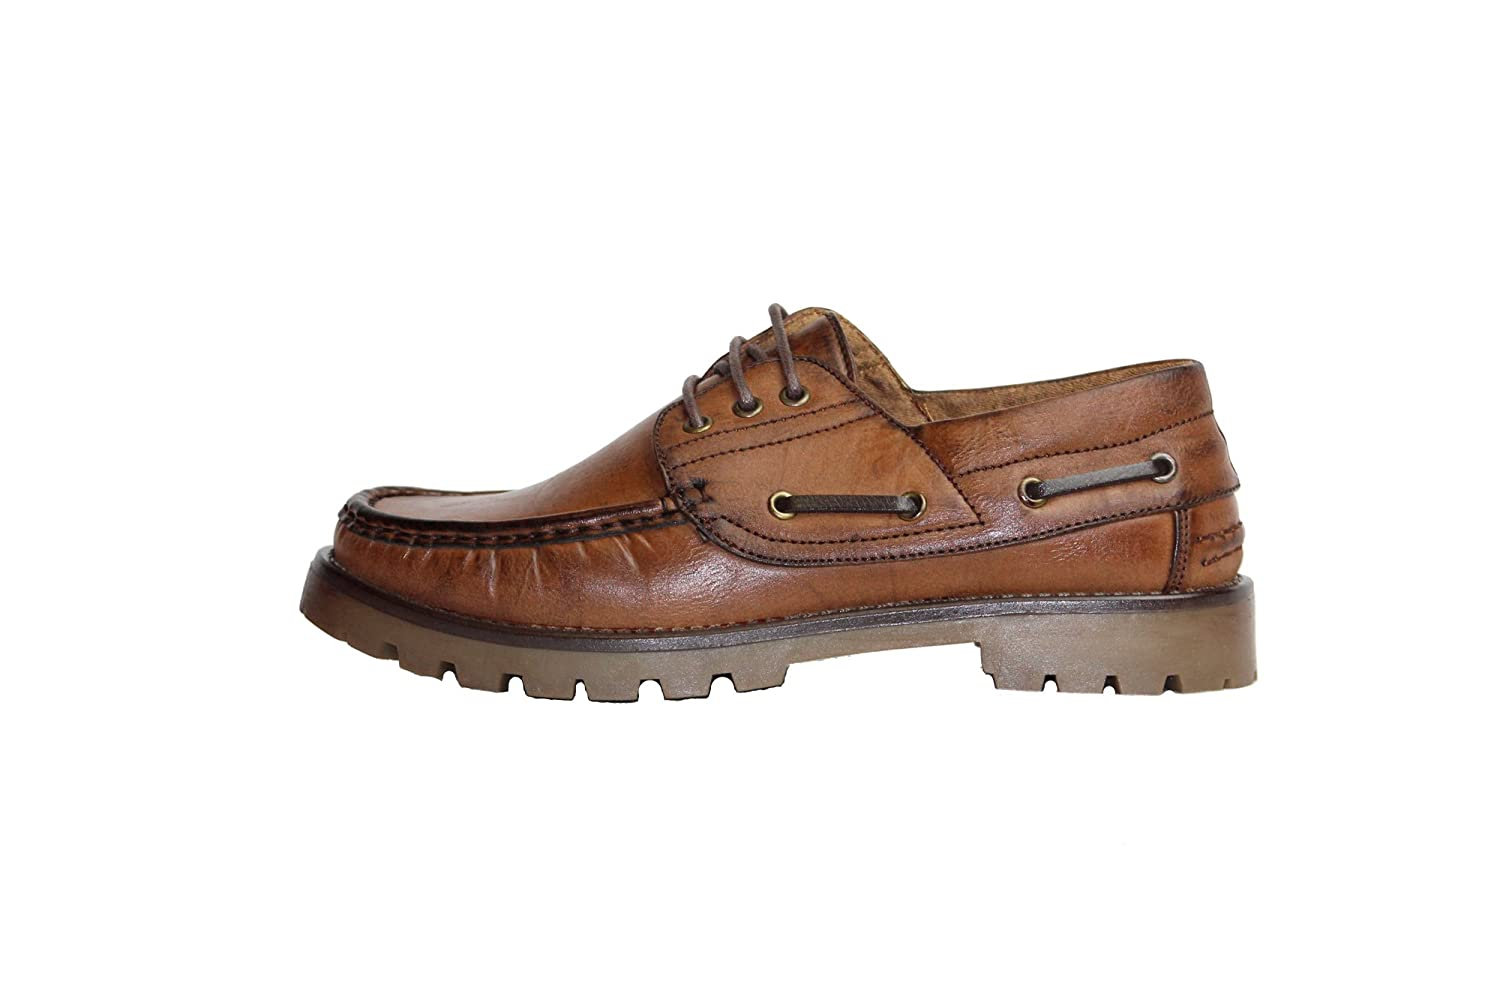 Amazon.com | beverly st Mens Leather Casual 3 Eyes Boat Deck Dress Shoes (Less) | Loafers & Slip-Ons